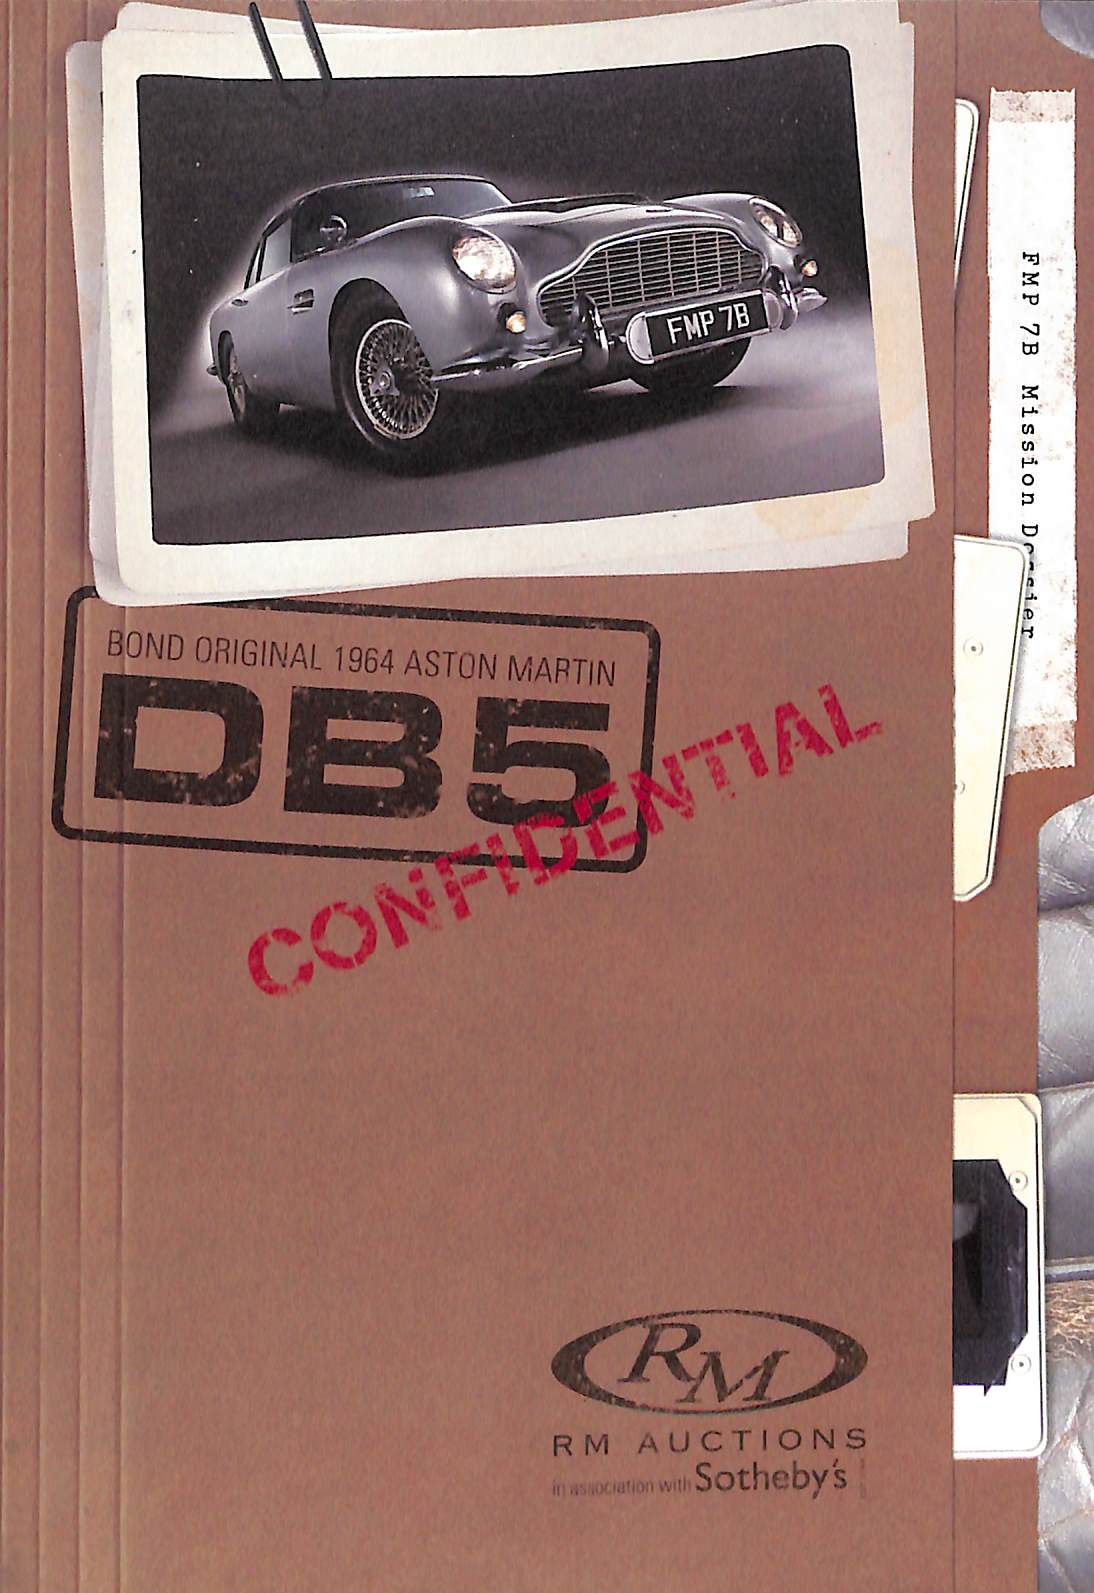 Bond Original 1964 Aston Martin DB5 RM Auction Booklet